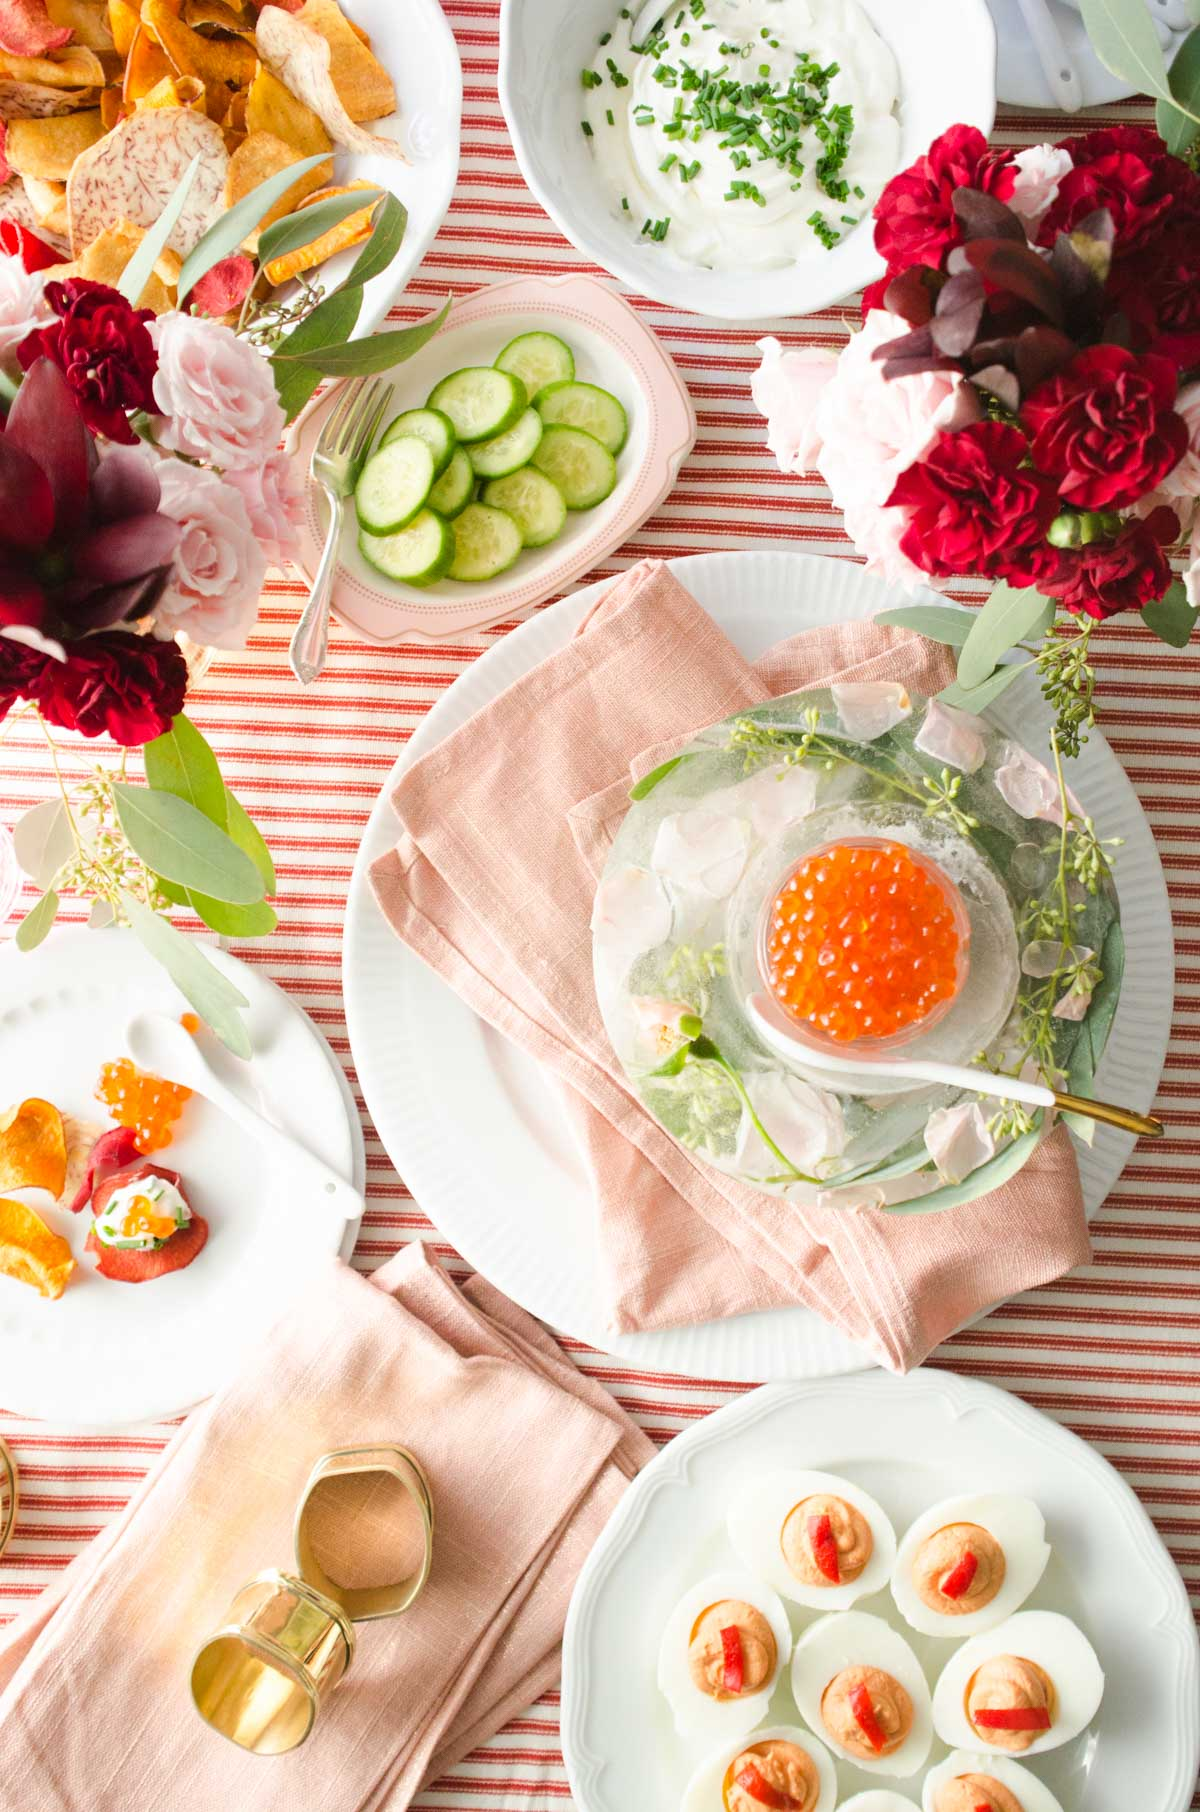 Salmon roe, floral ice bowl, and deviled egg Valentine's Day appetizer party table via @thouswellblog